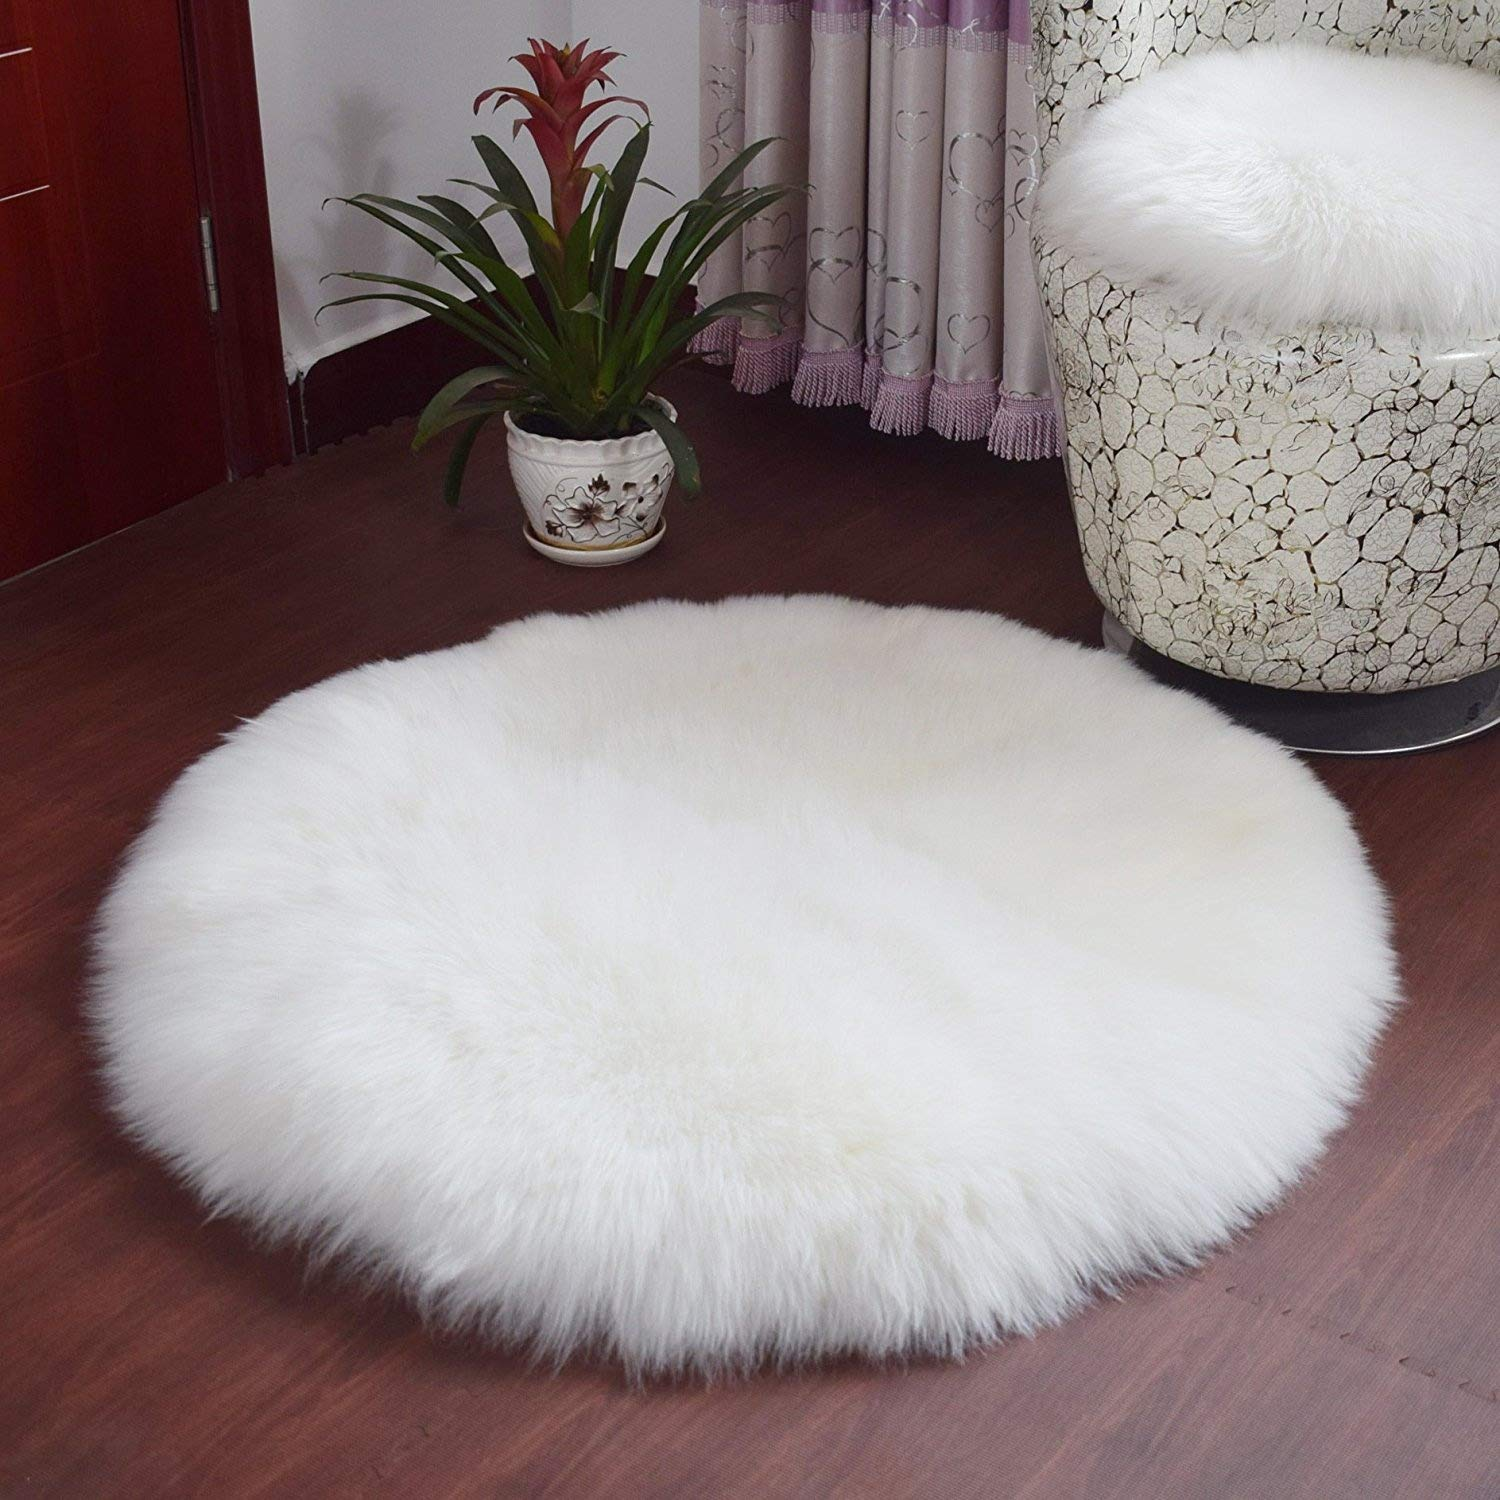 Faux Fur Small White Car Shag Carpet Thick Fuzzy Squares Fluffy Mat Pad Area Rug Padding Roll Bathroom Living Room Classroom from Australia Carpeting (Round ...